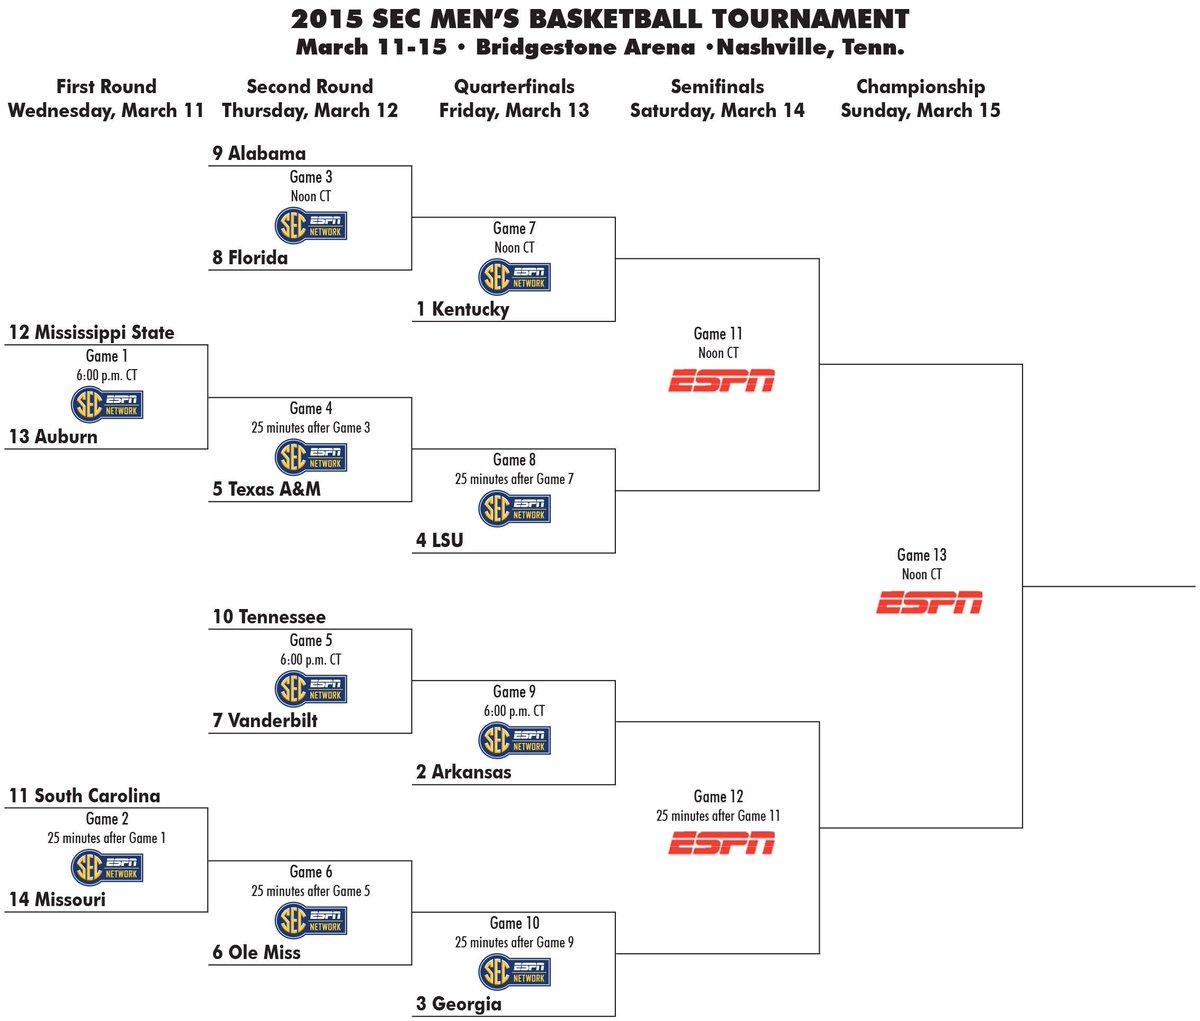 2015 SEC Men's Basketball Tournament bracket http://t.co/mhXhaXsn9v